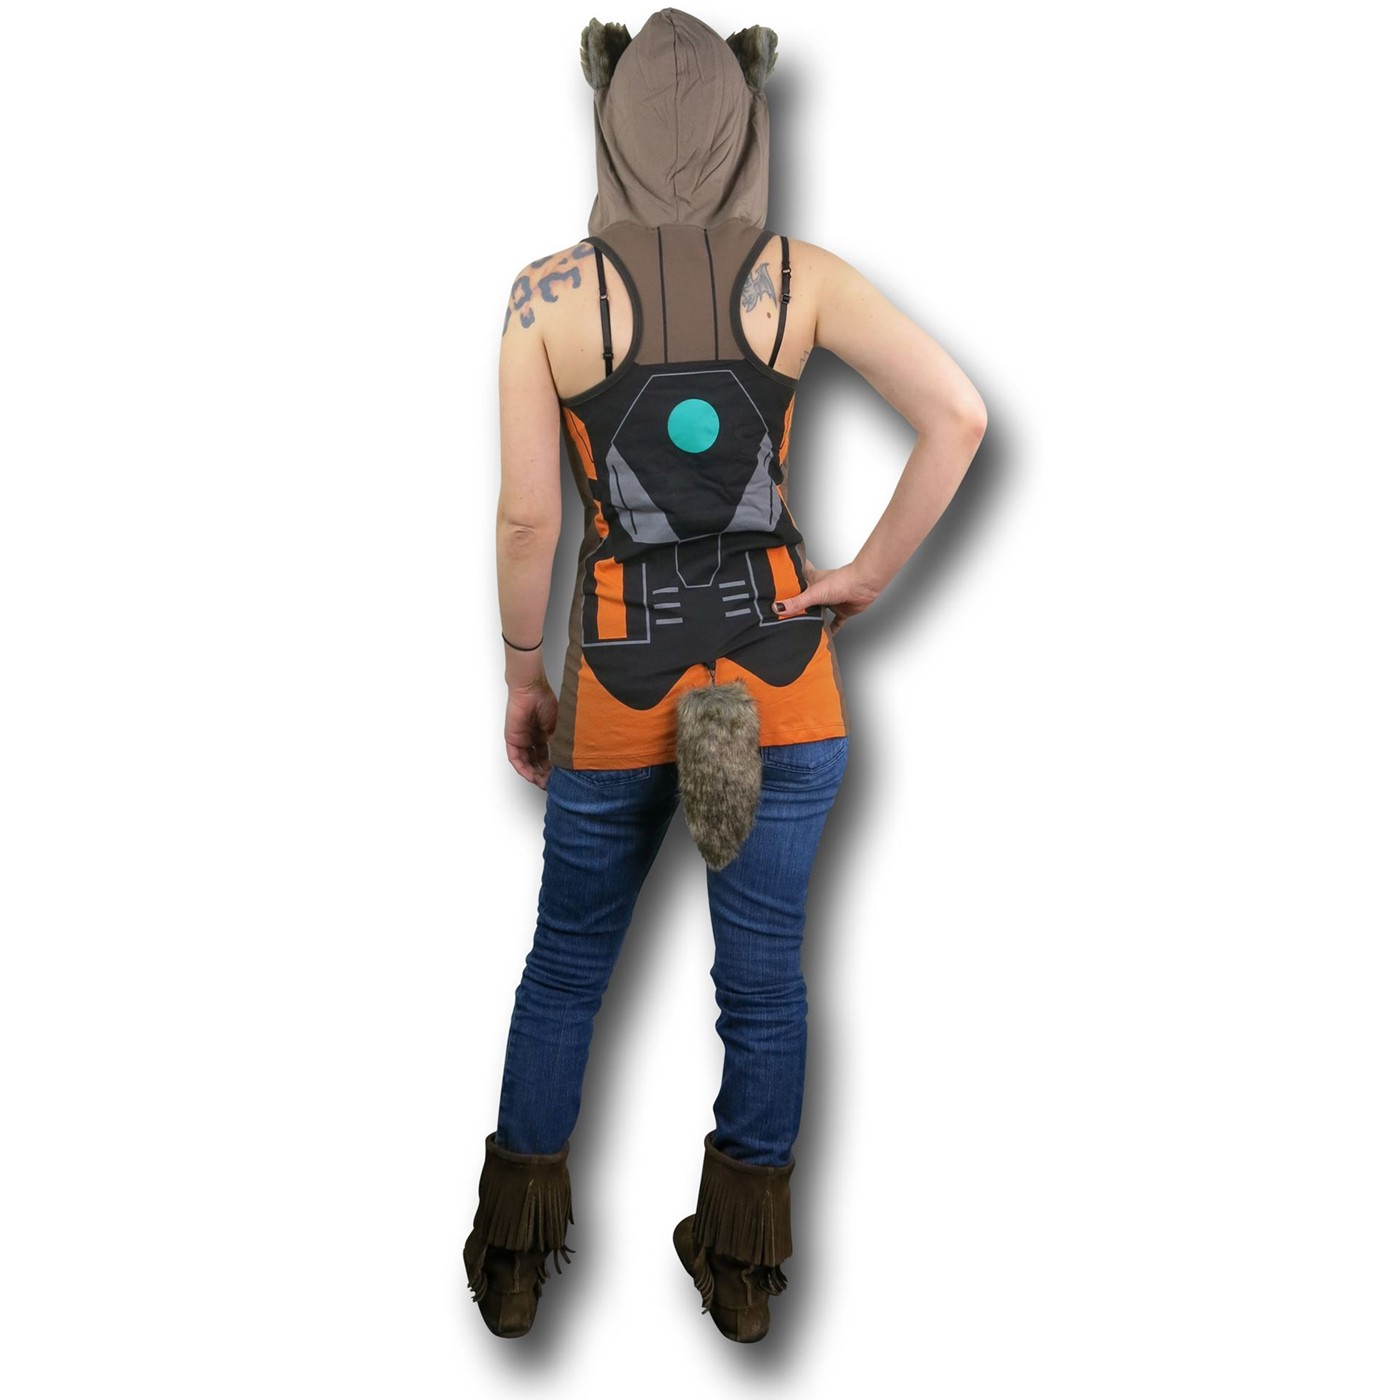 GOTG Rocket Raccoon Hooded Women's Tank Top w/ Tail